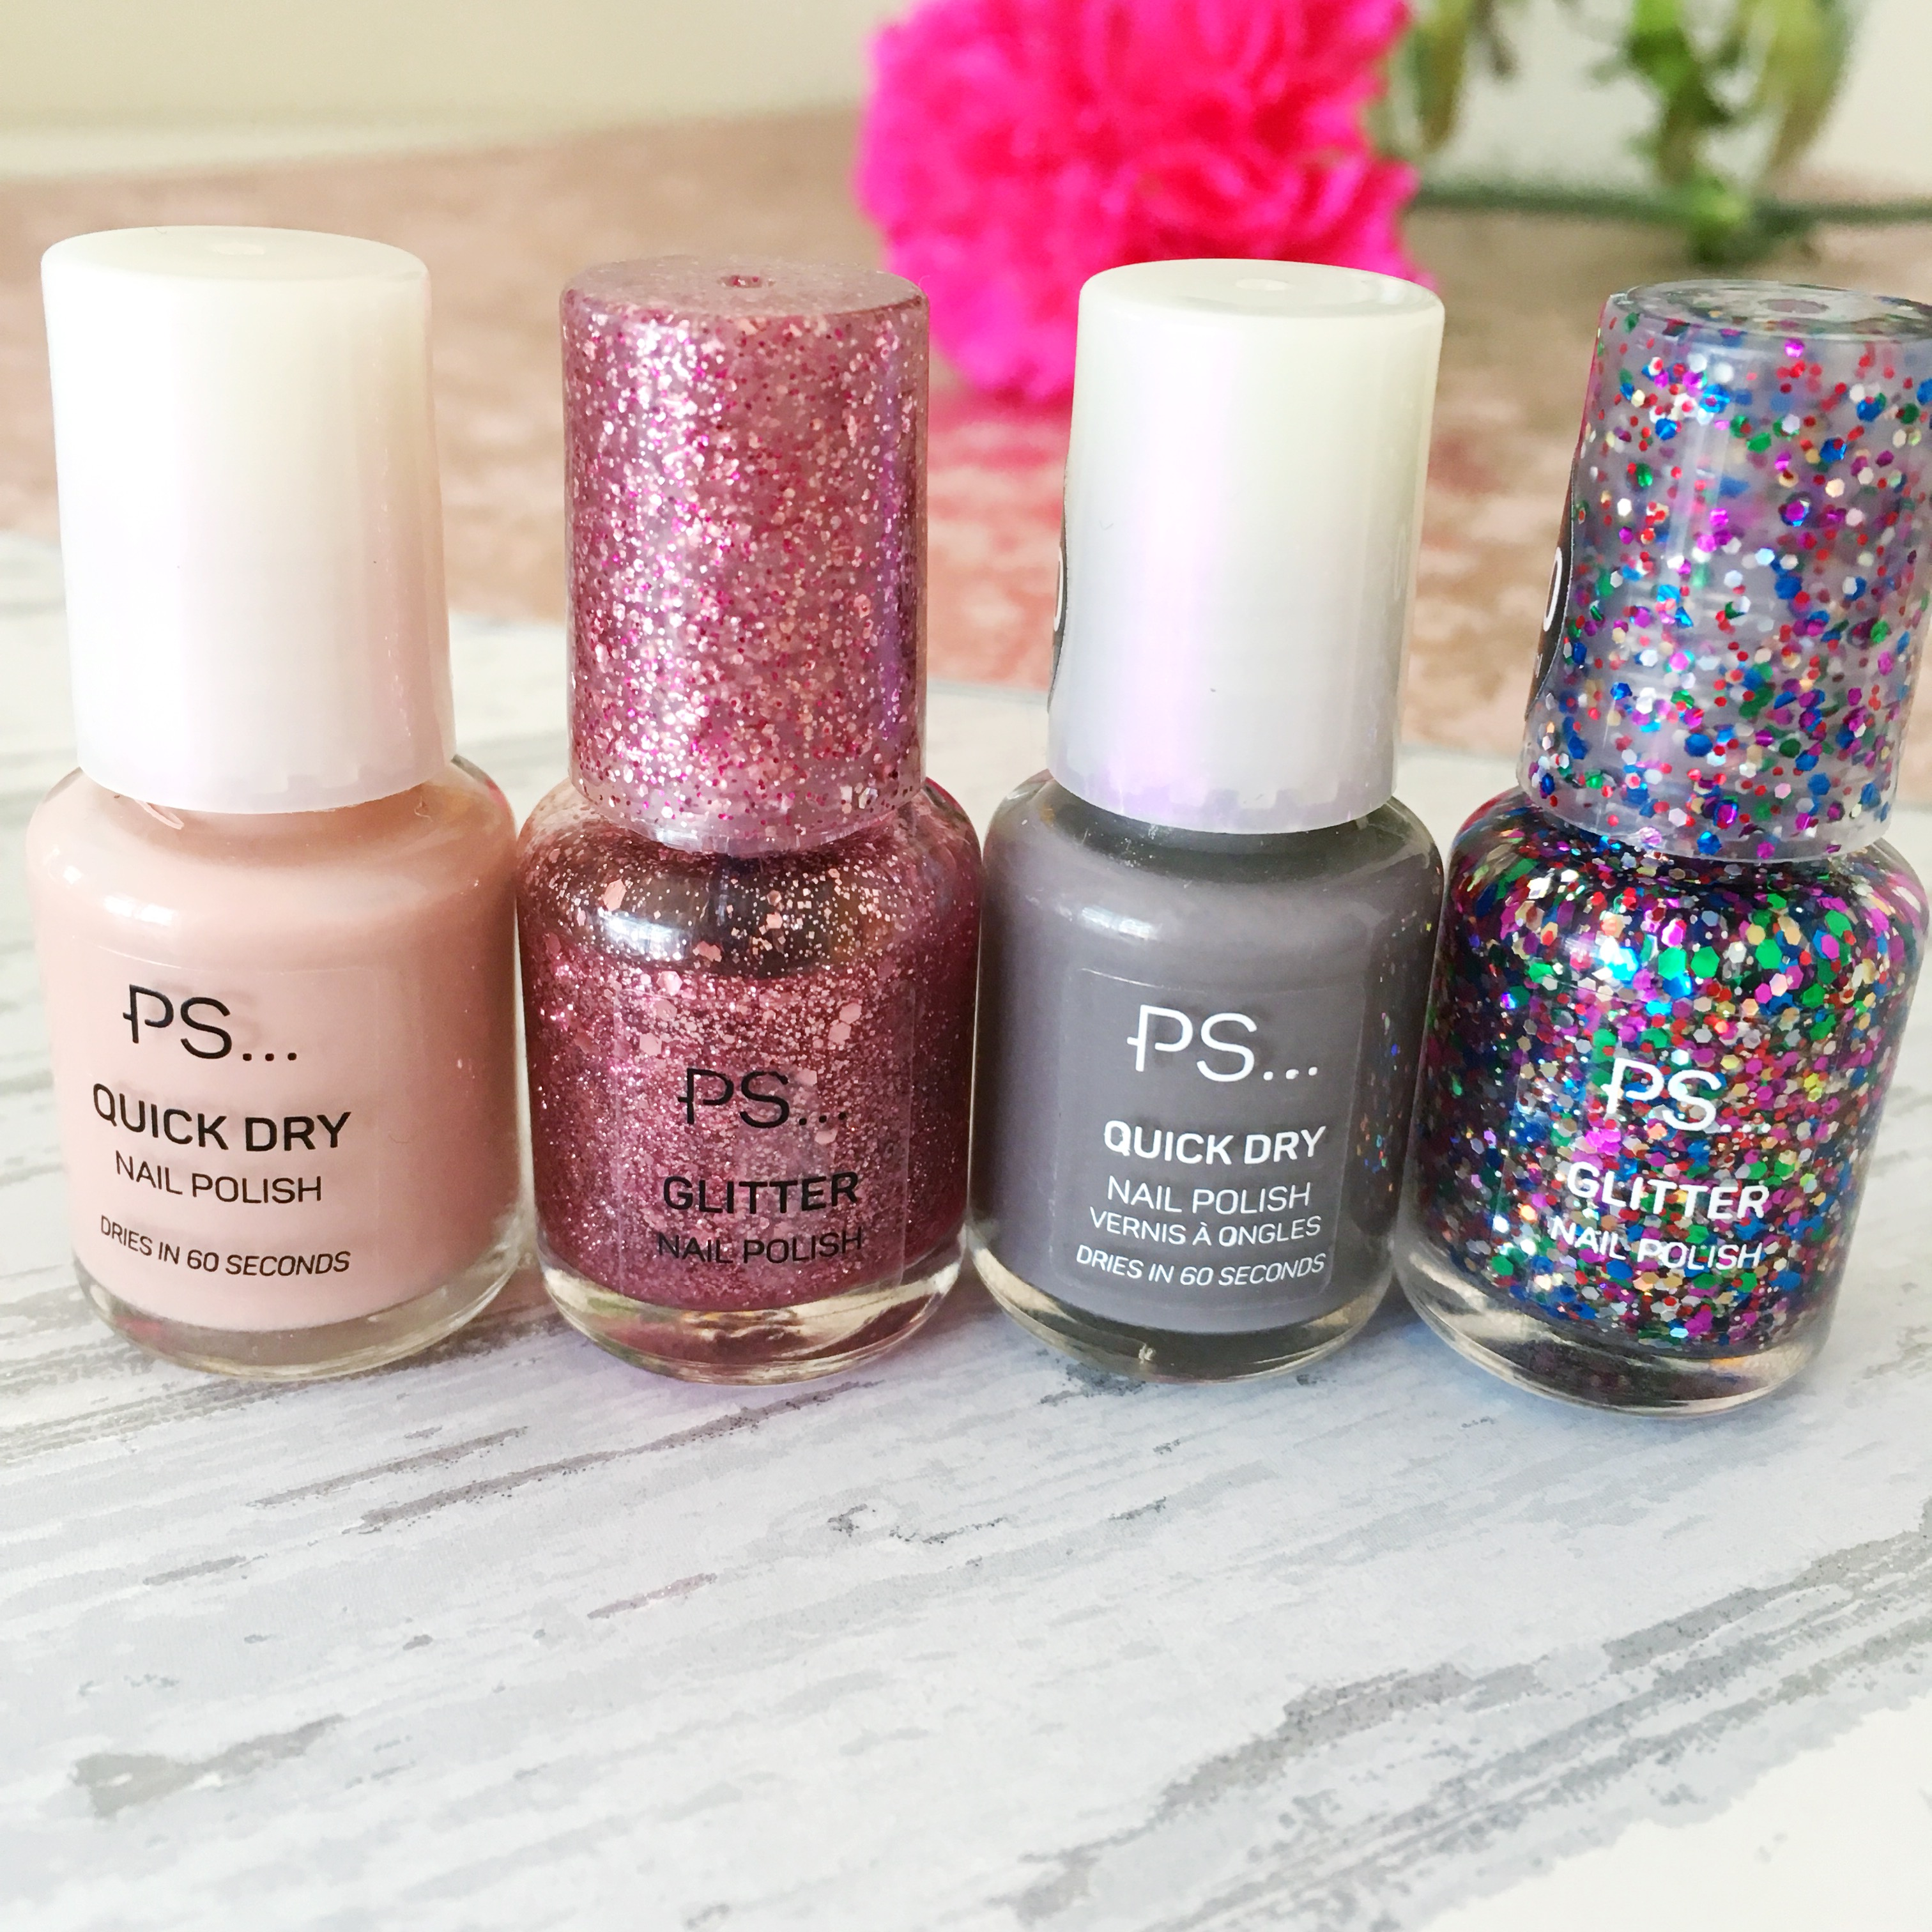 Primark PS... Quick Dry Nail Polish review - Makeup Artistry Rachael ...